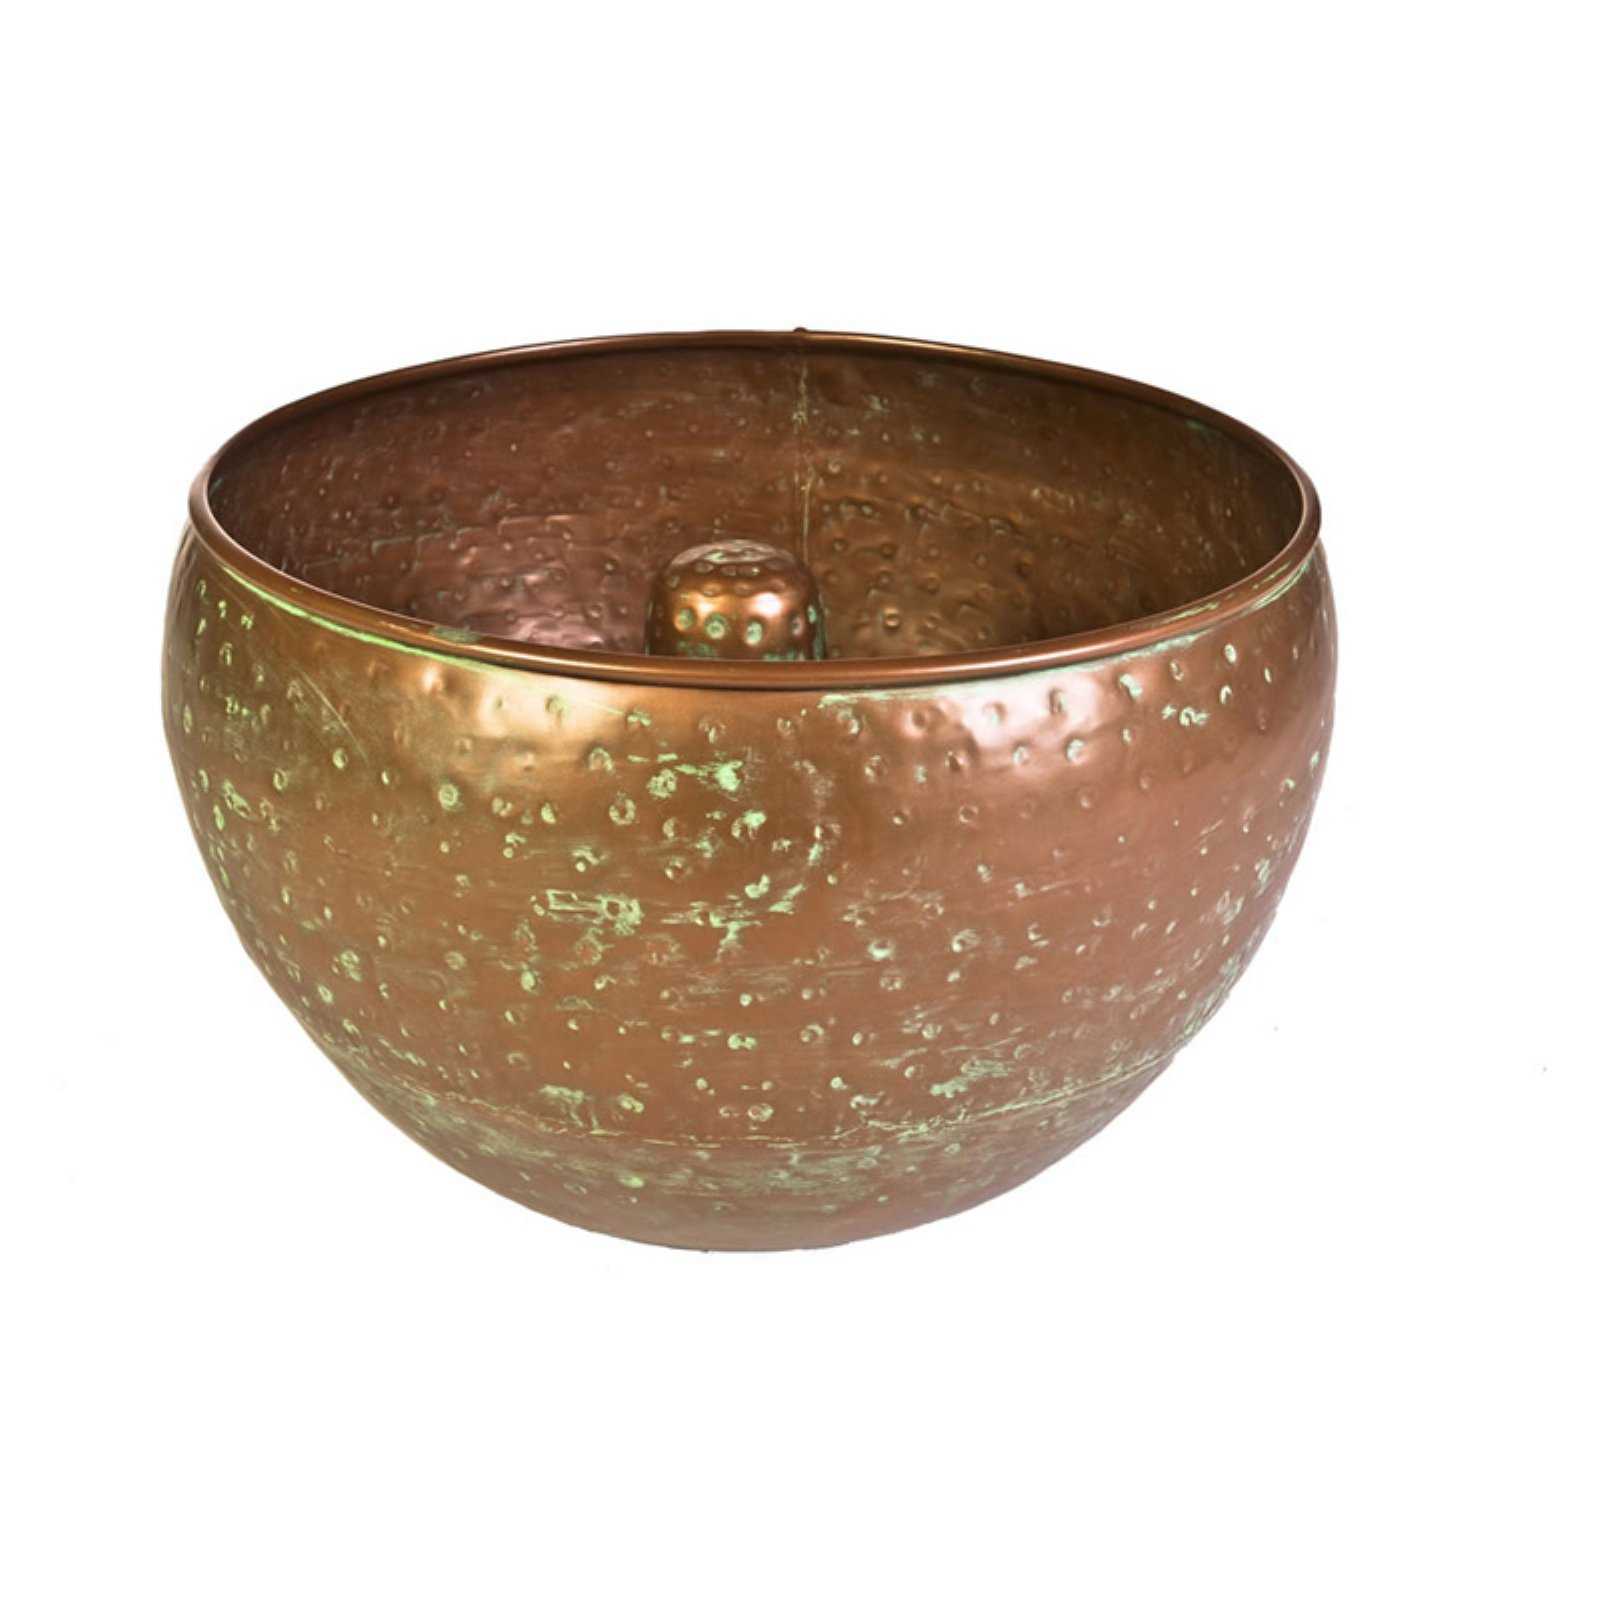 Garden Hose Container, Hammered Copper Finish